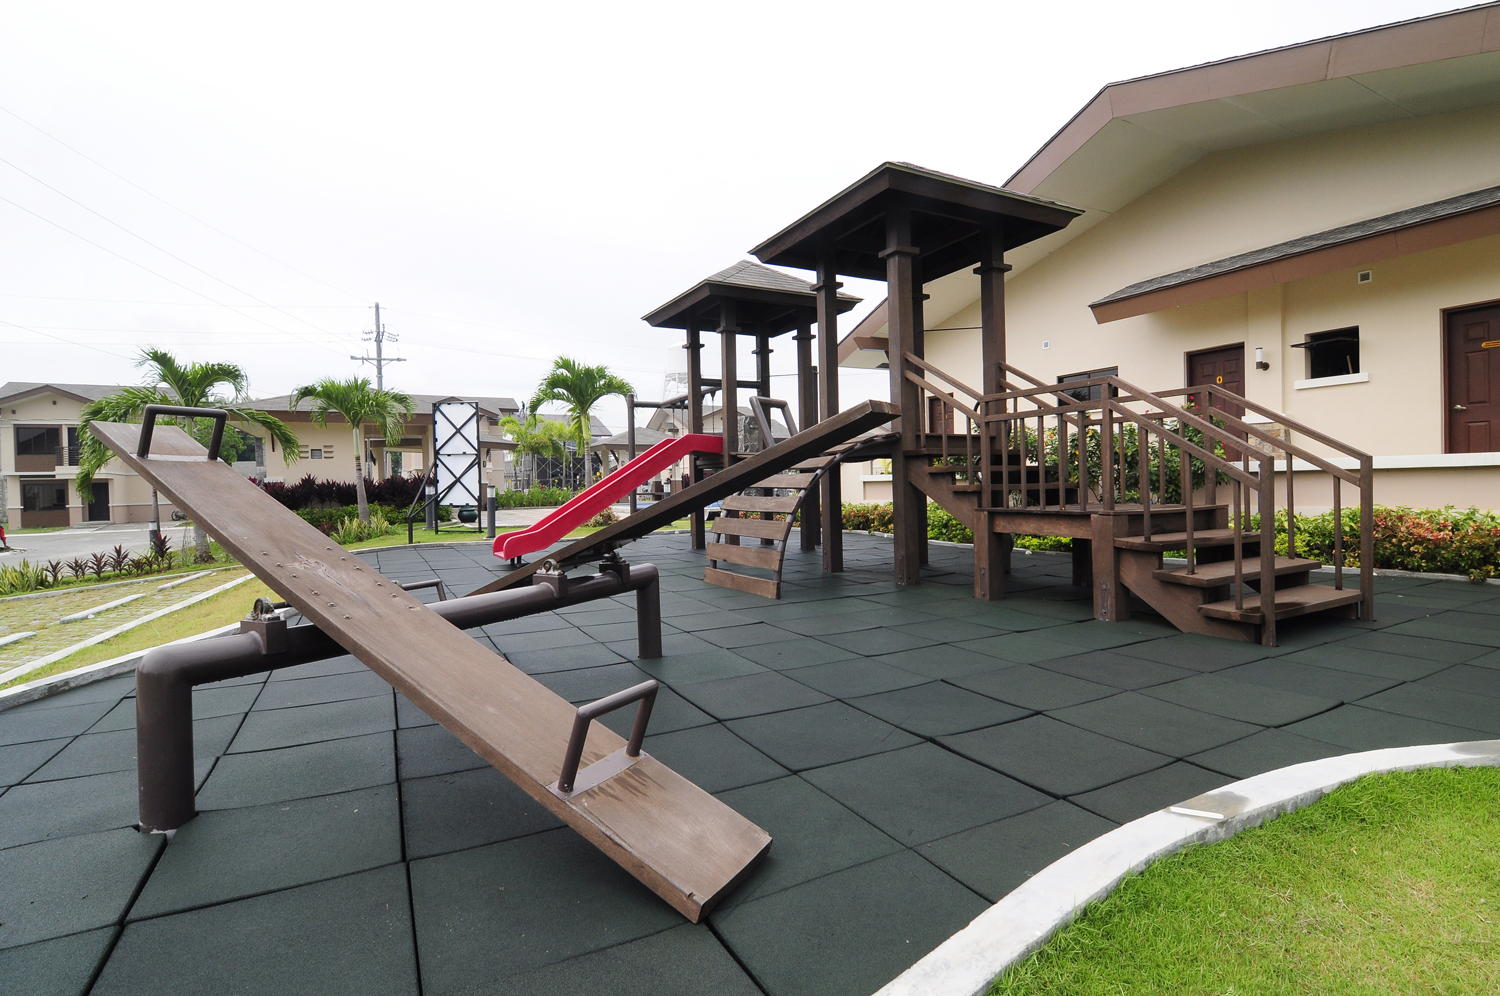 willow-park-homes-play-ground